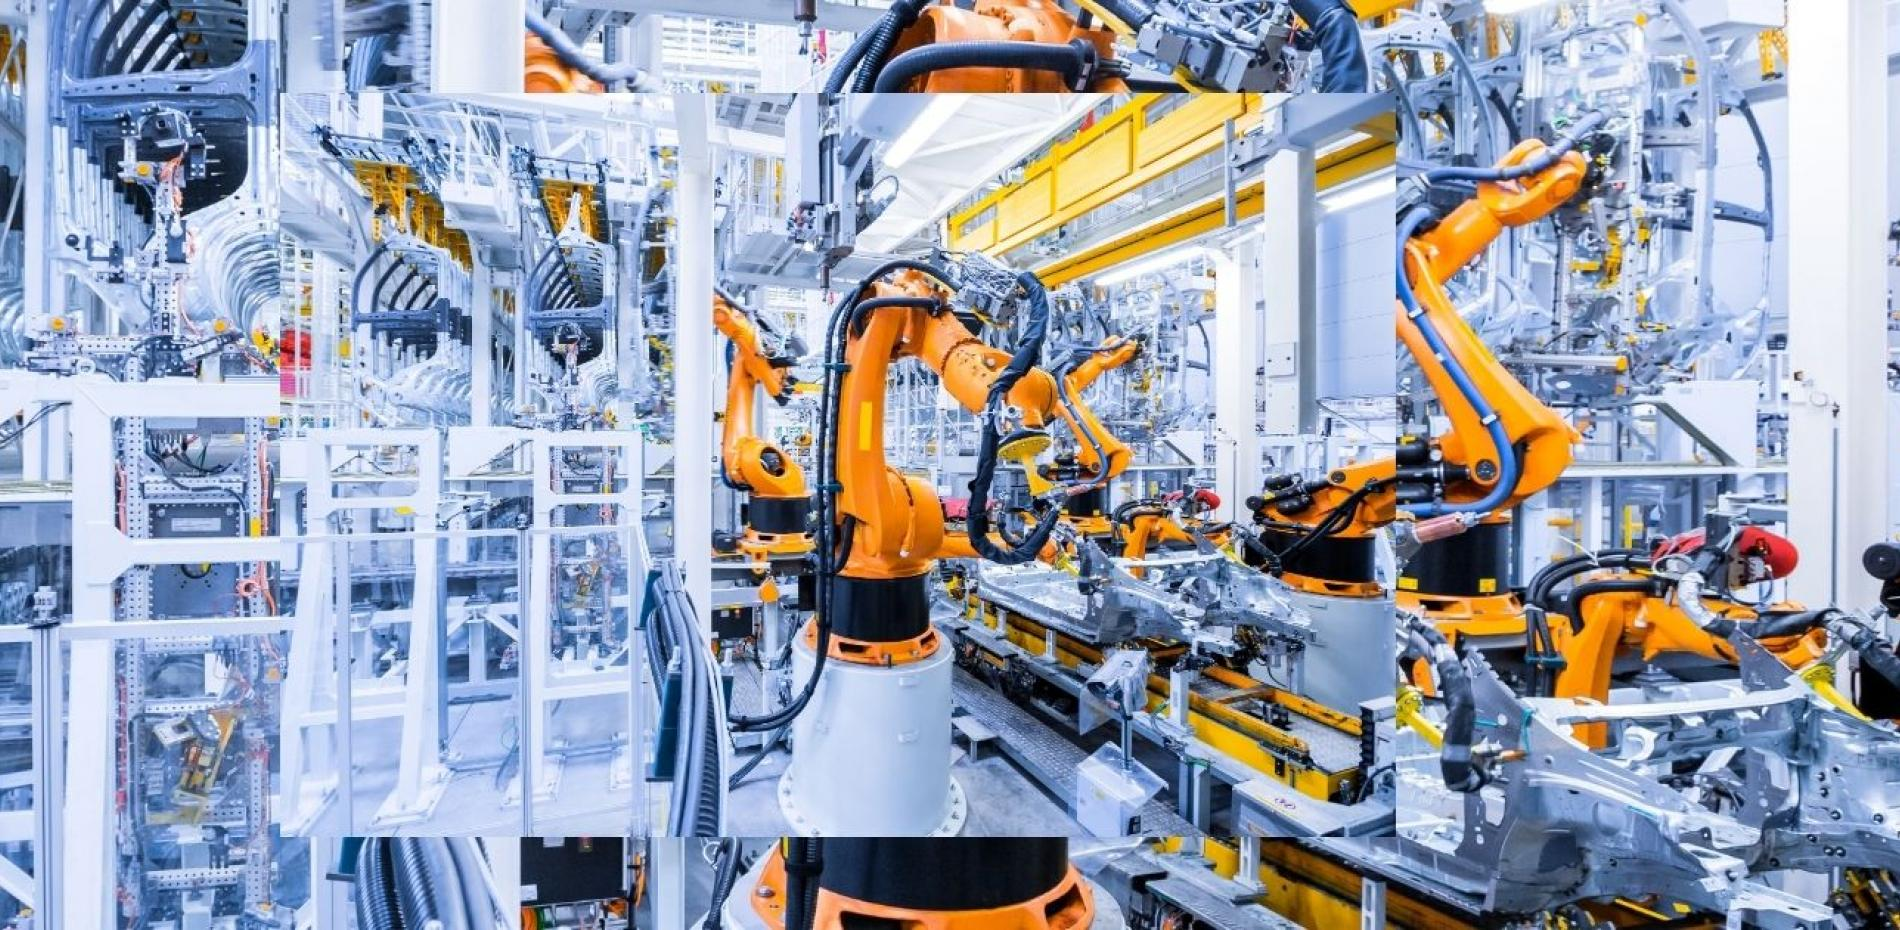 Machines performing human tasks in the factory of the future